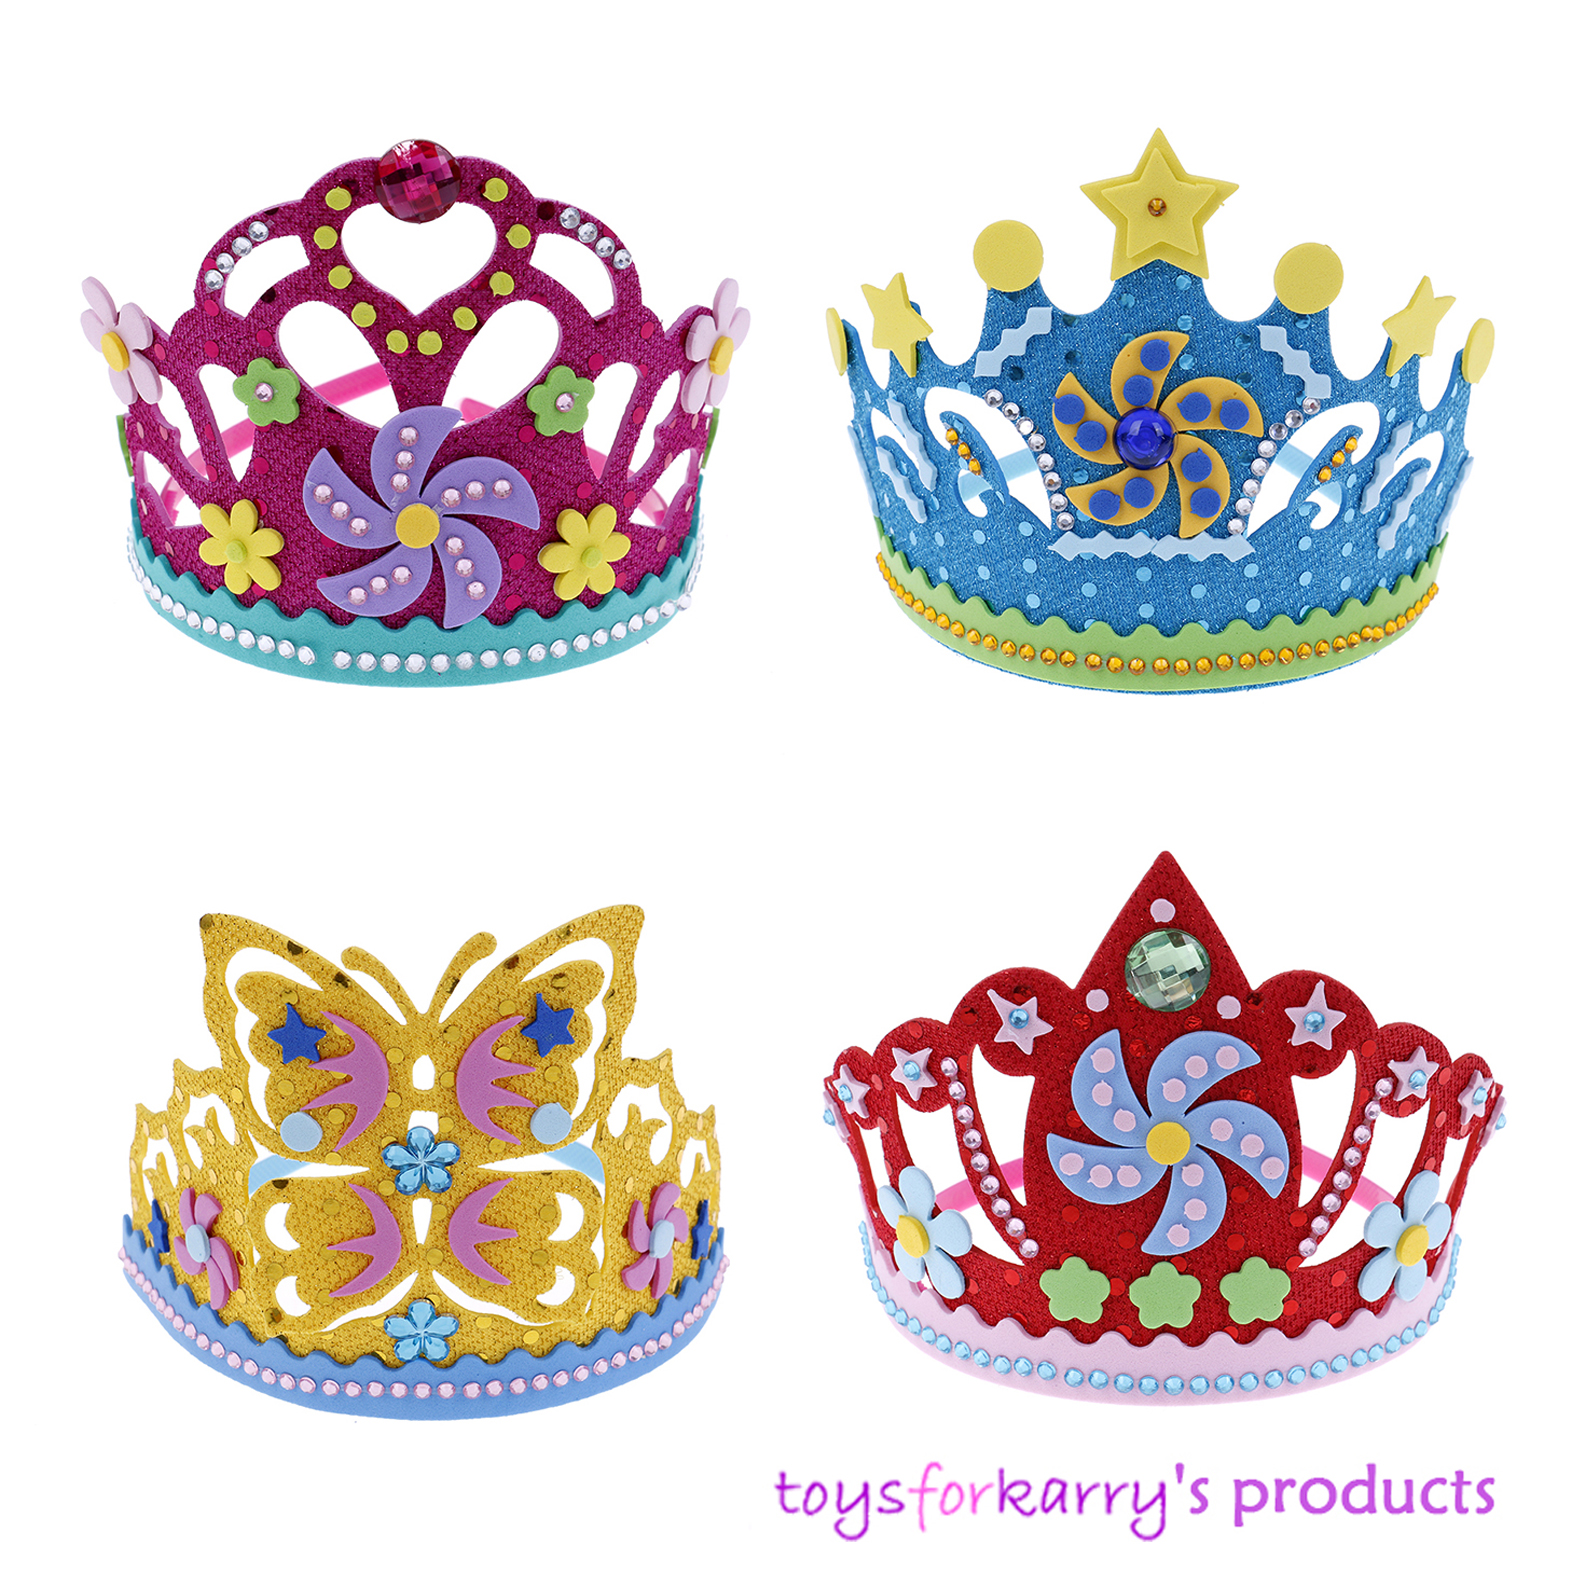 DIY Craft EVA Foam Crown Creative Paper Sequins Flowers Stars Patterns Toys For Children Kindergarten Art Party Decorations Gift